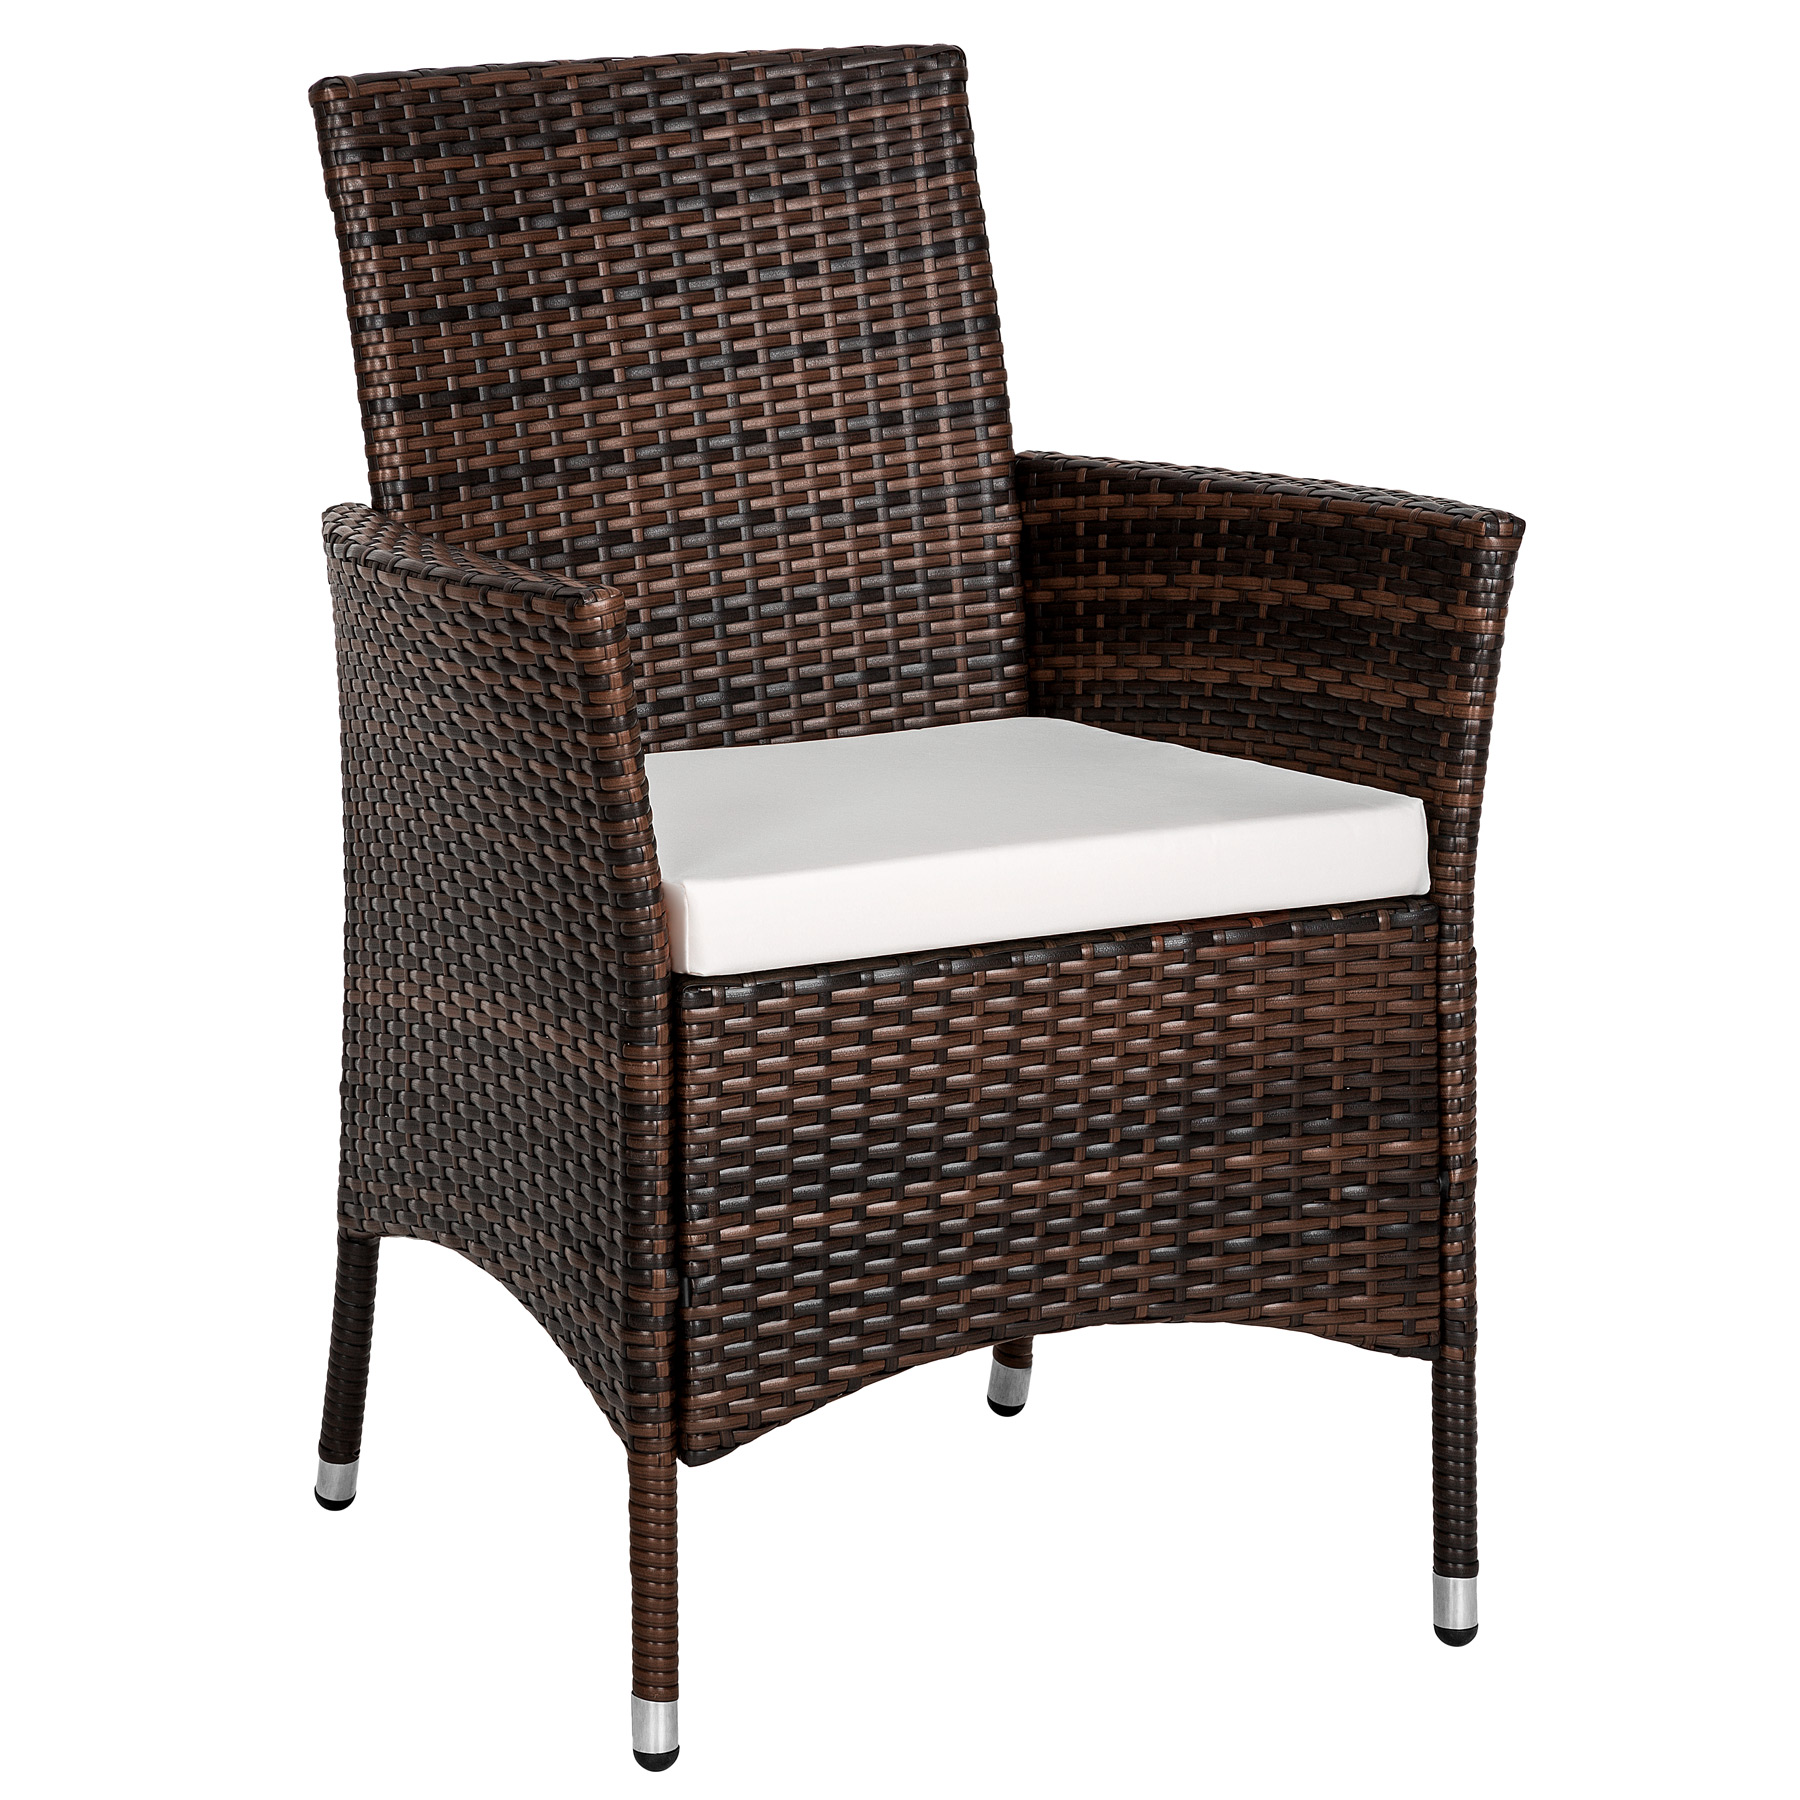 6 seater rattan garden furniture dining set chairs table for Outdoor furniture 3 seater